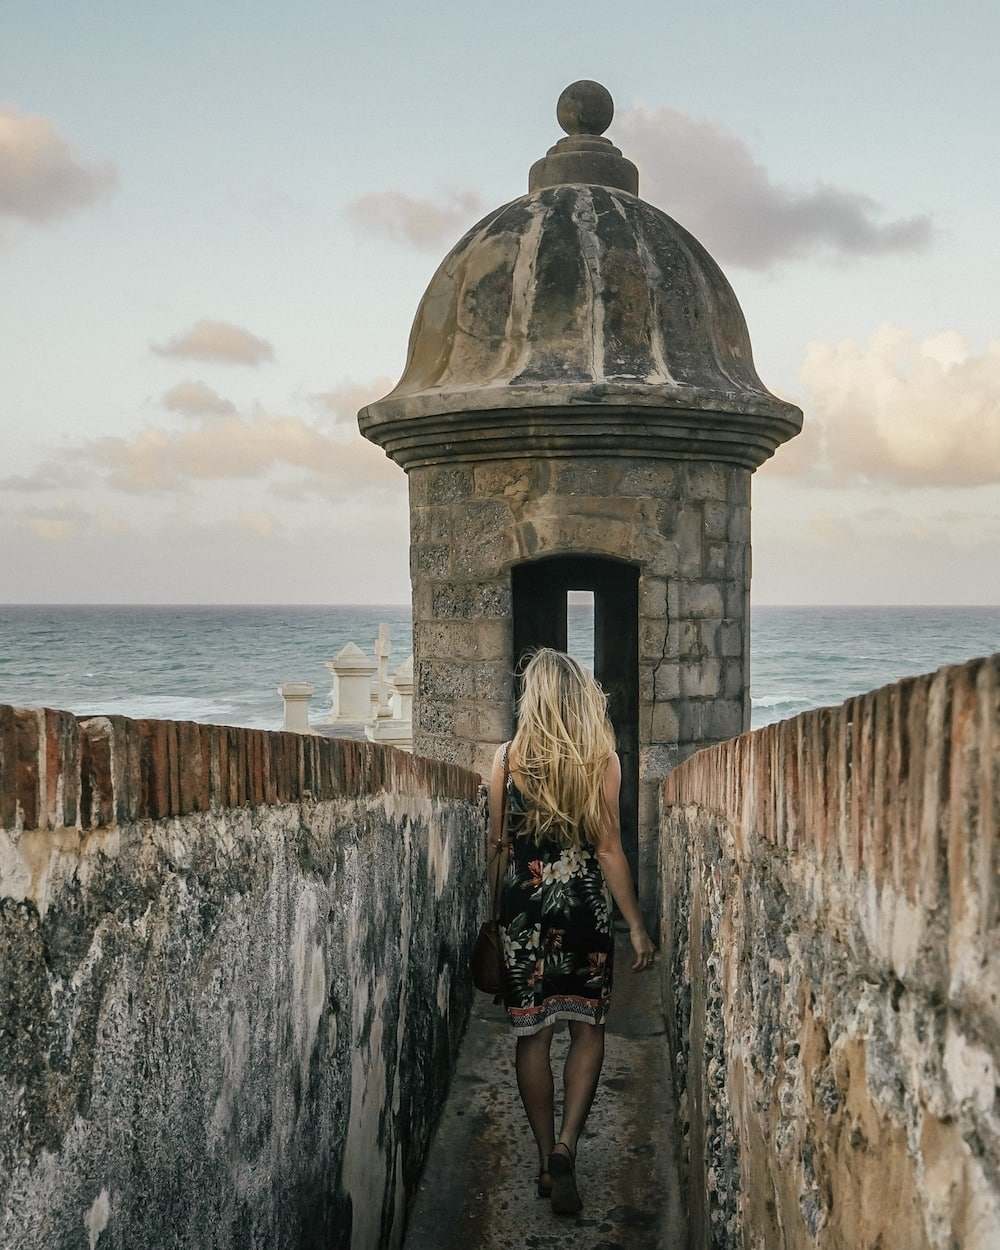 21 Photos to Inspire You to Visit Puerto Rico